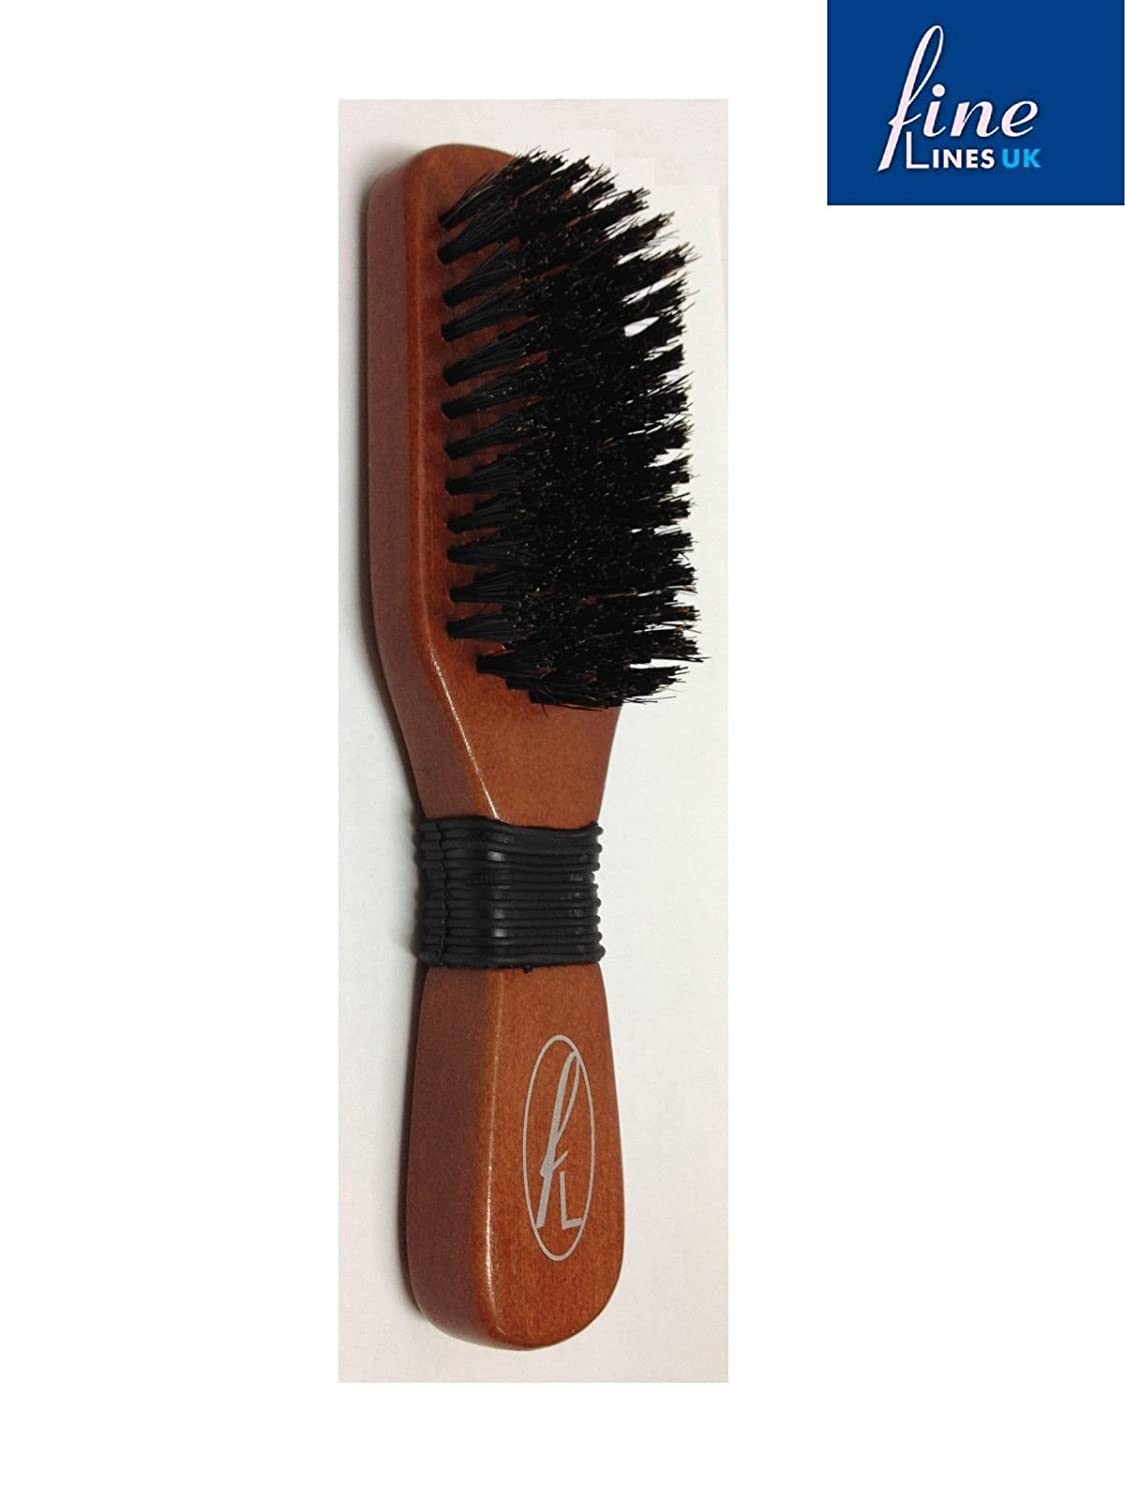 Professional Hard Bristle Paddle Hair Brush Fine Lines 802-10